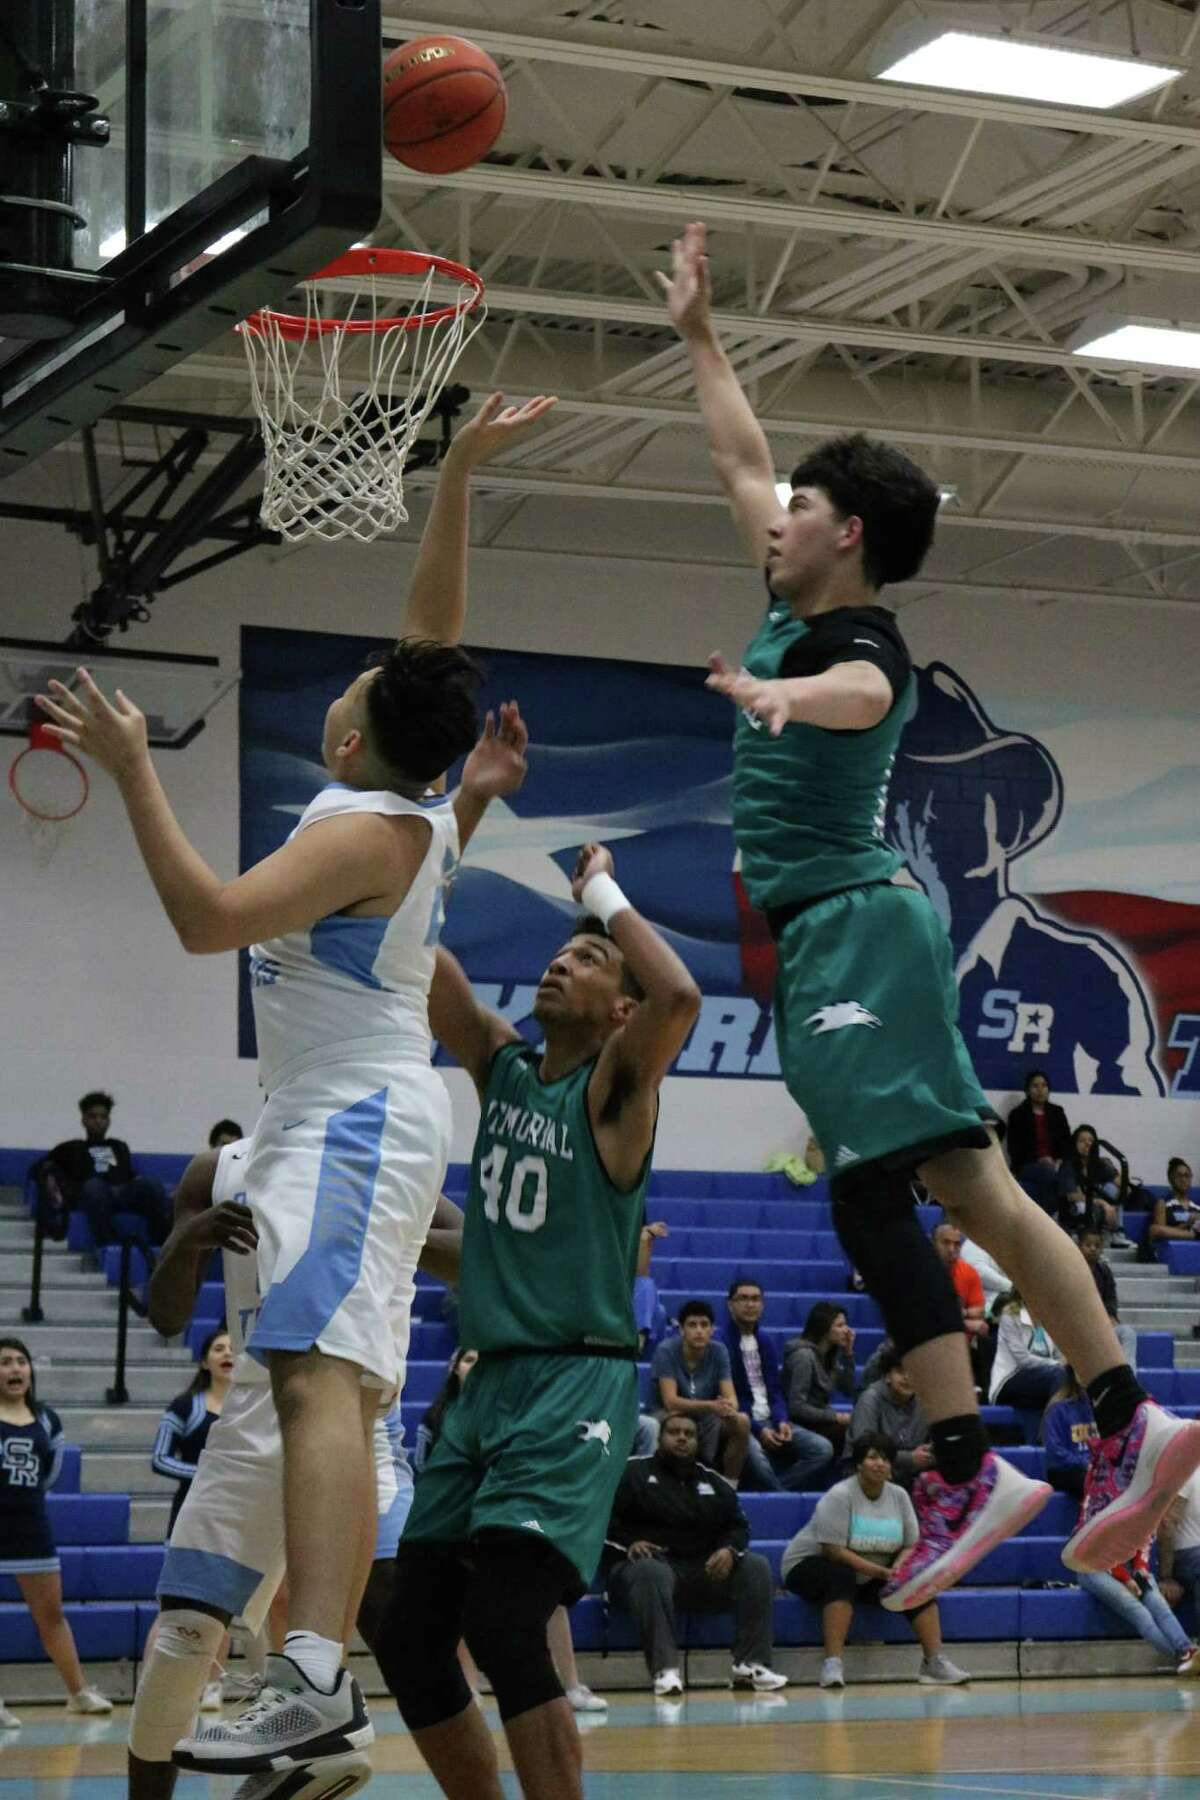 Sam Rayburn's Jeremy Mancia works his way past a pair of Memorial defenders in trying to score a first-half bucket.